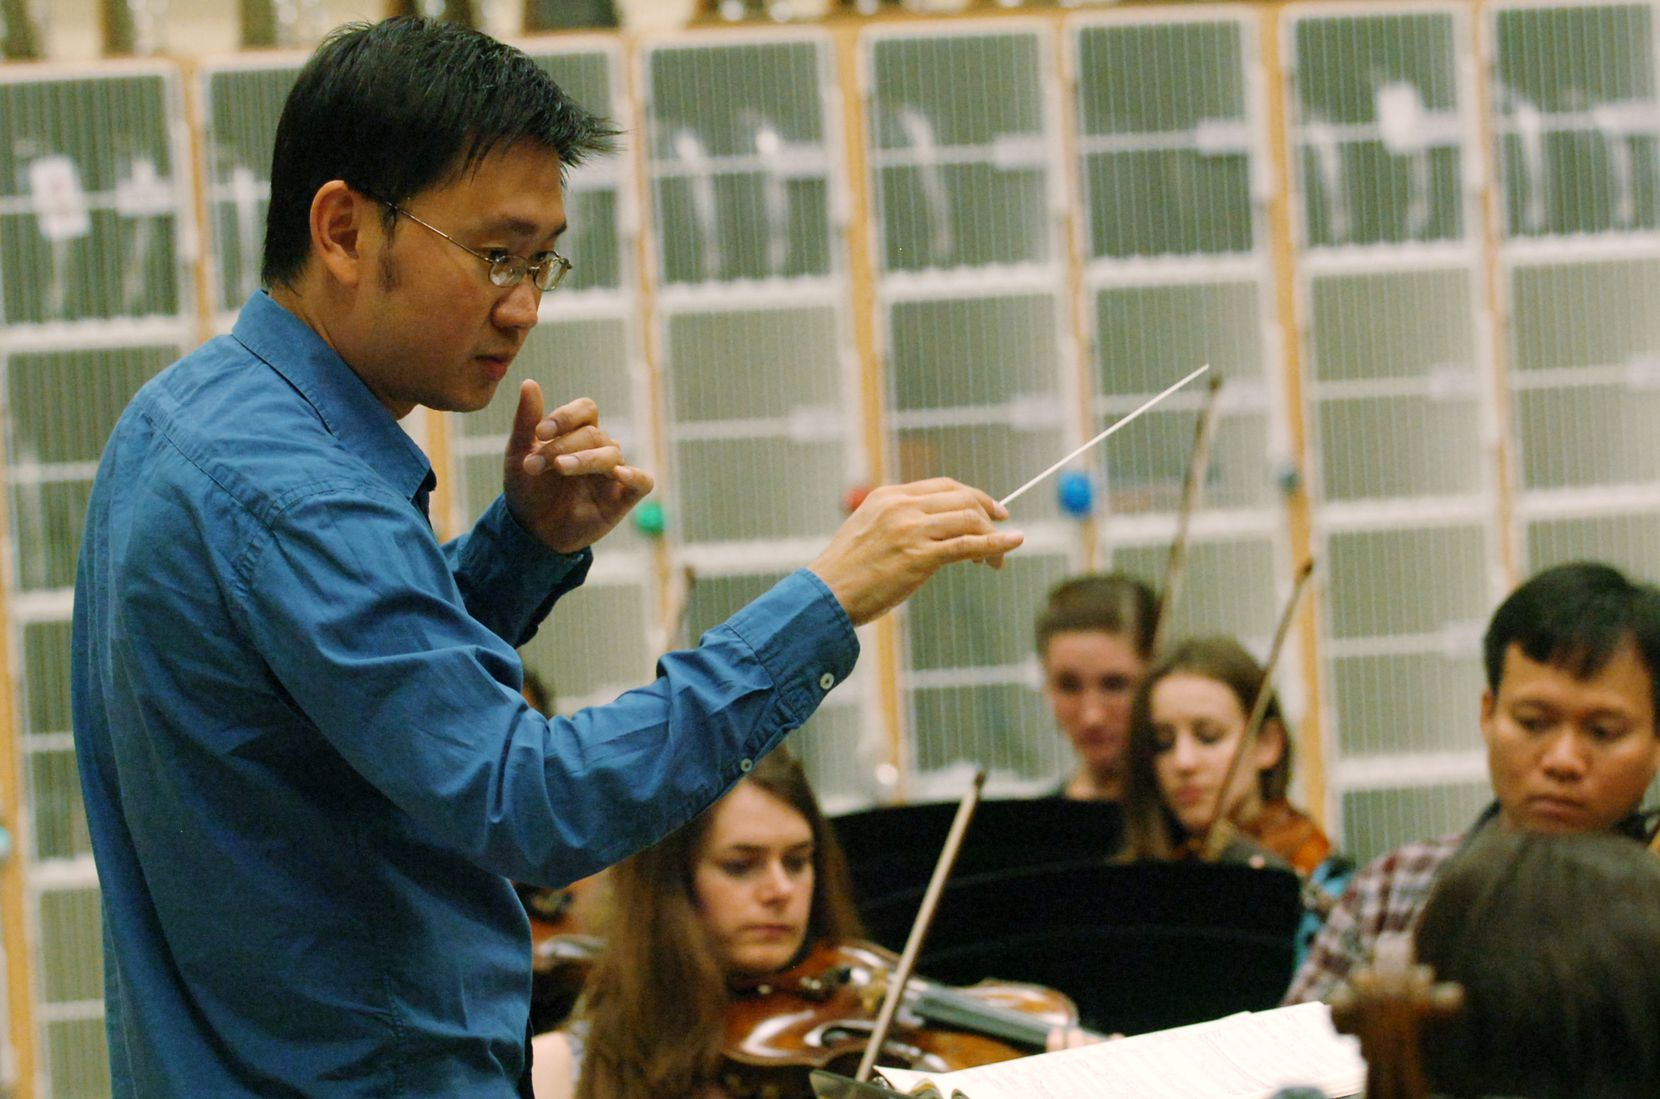 Artistic director Jason Lim conducts the Odysseus Chamber Orchestra, a newly formed professional, nonprofit chamber orchestra, during their practice at Calhoun Middle School, Tuesday, May 1, 2012, in Denton. Lim said he had used Brown Paper Tickets since 2012.